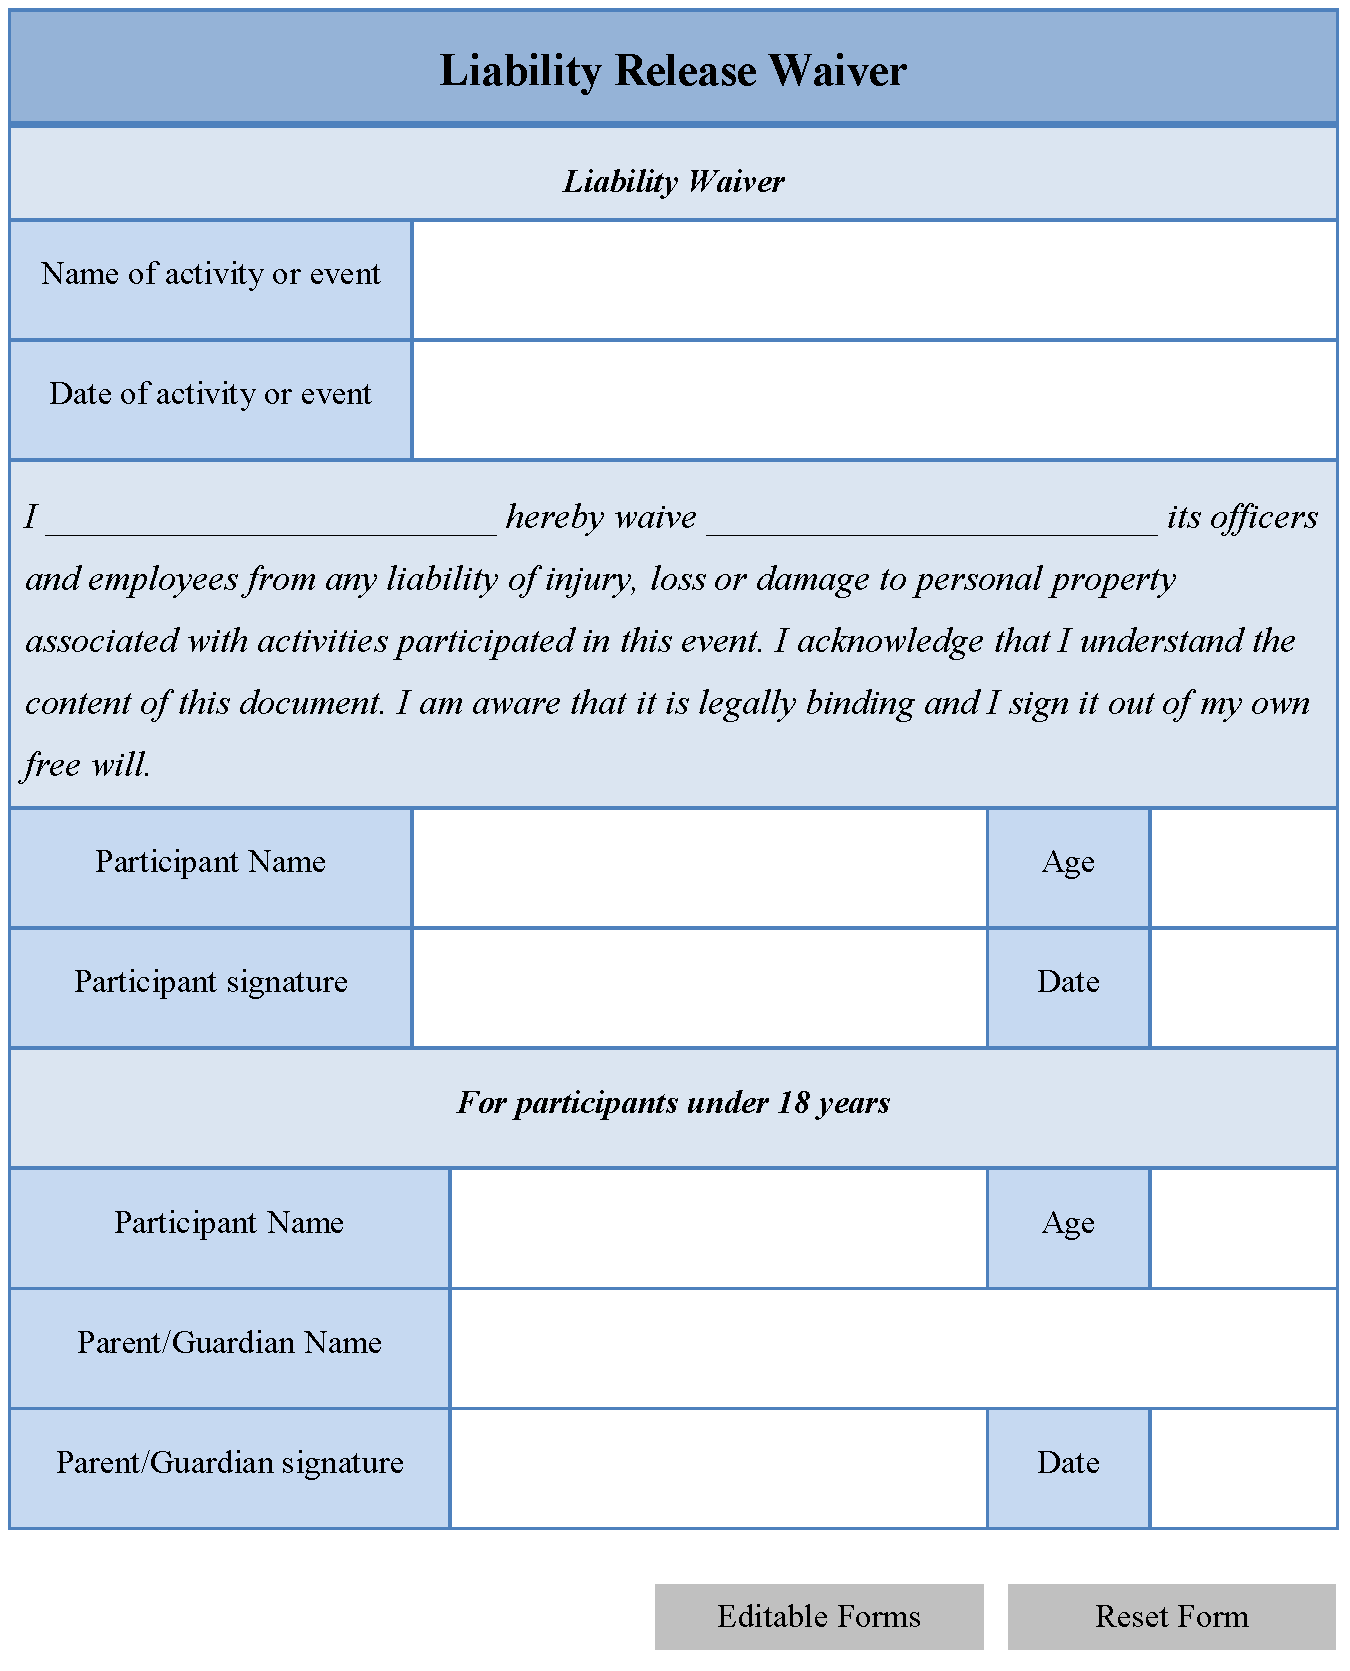 Liability Waiver Form  Free Liability Waiver Form Template